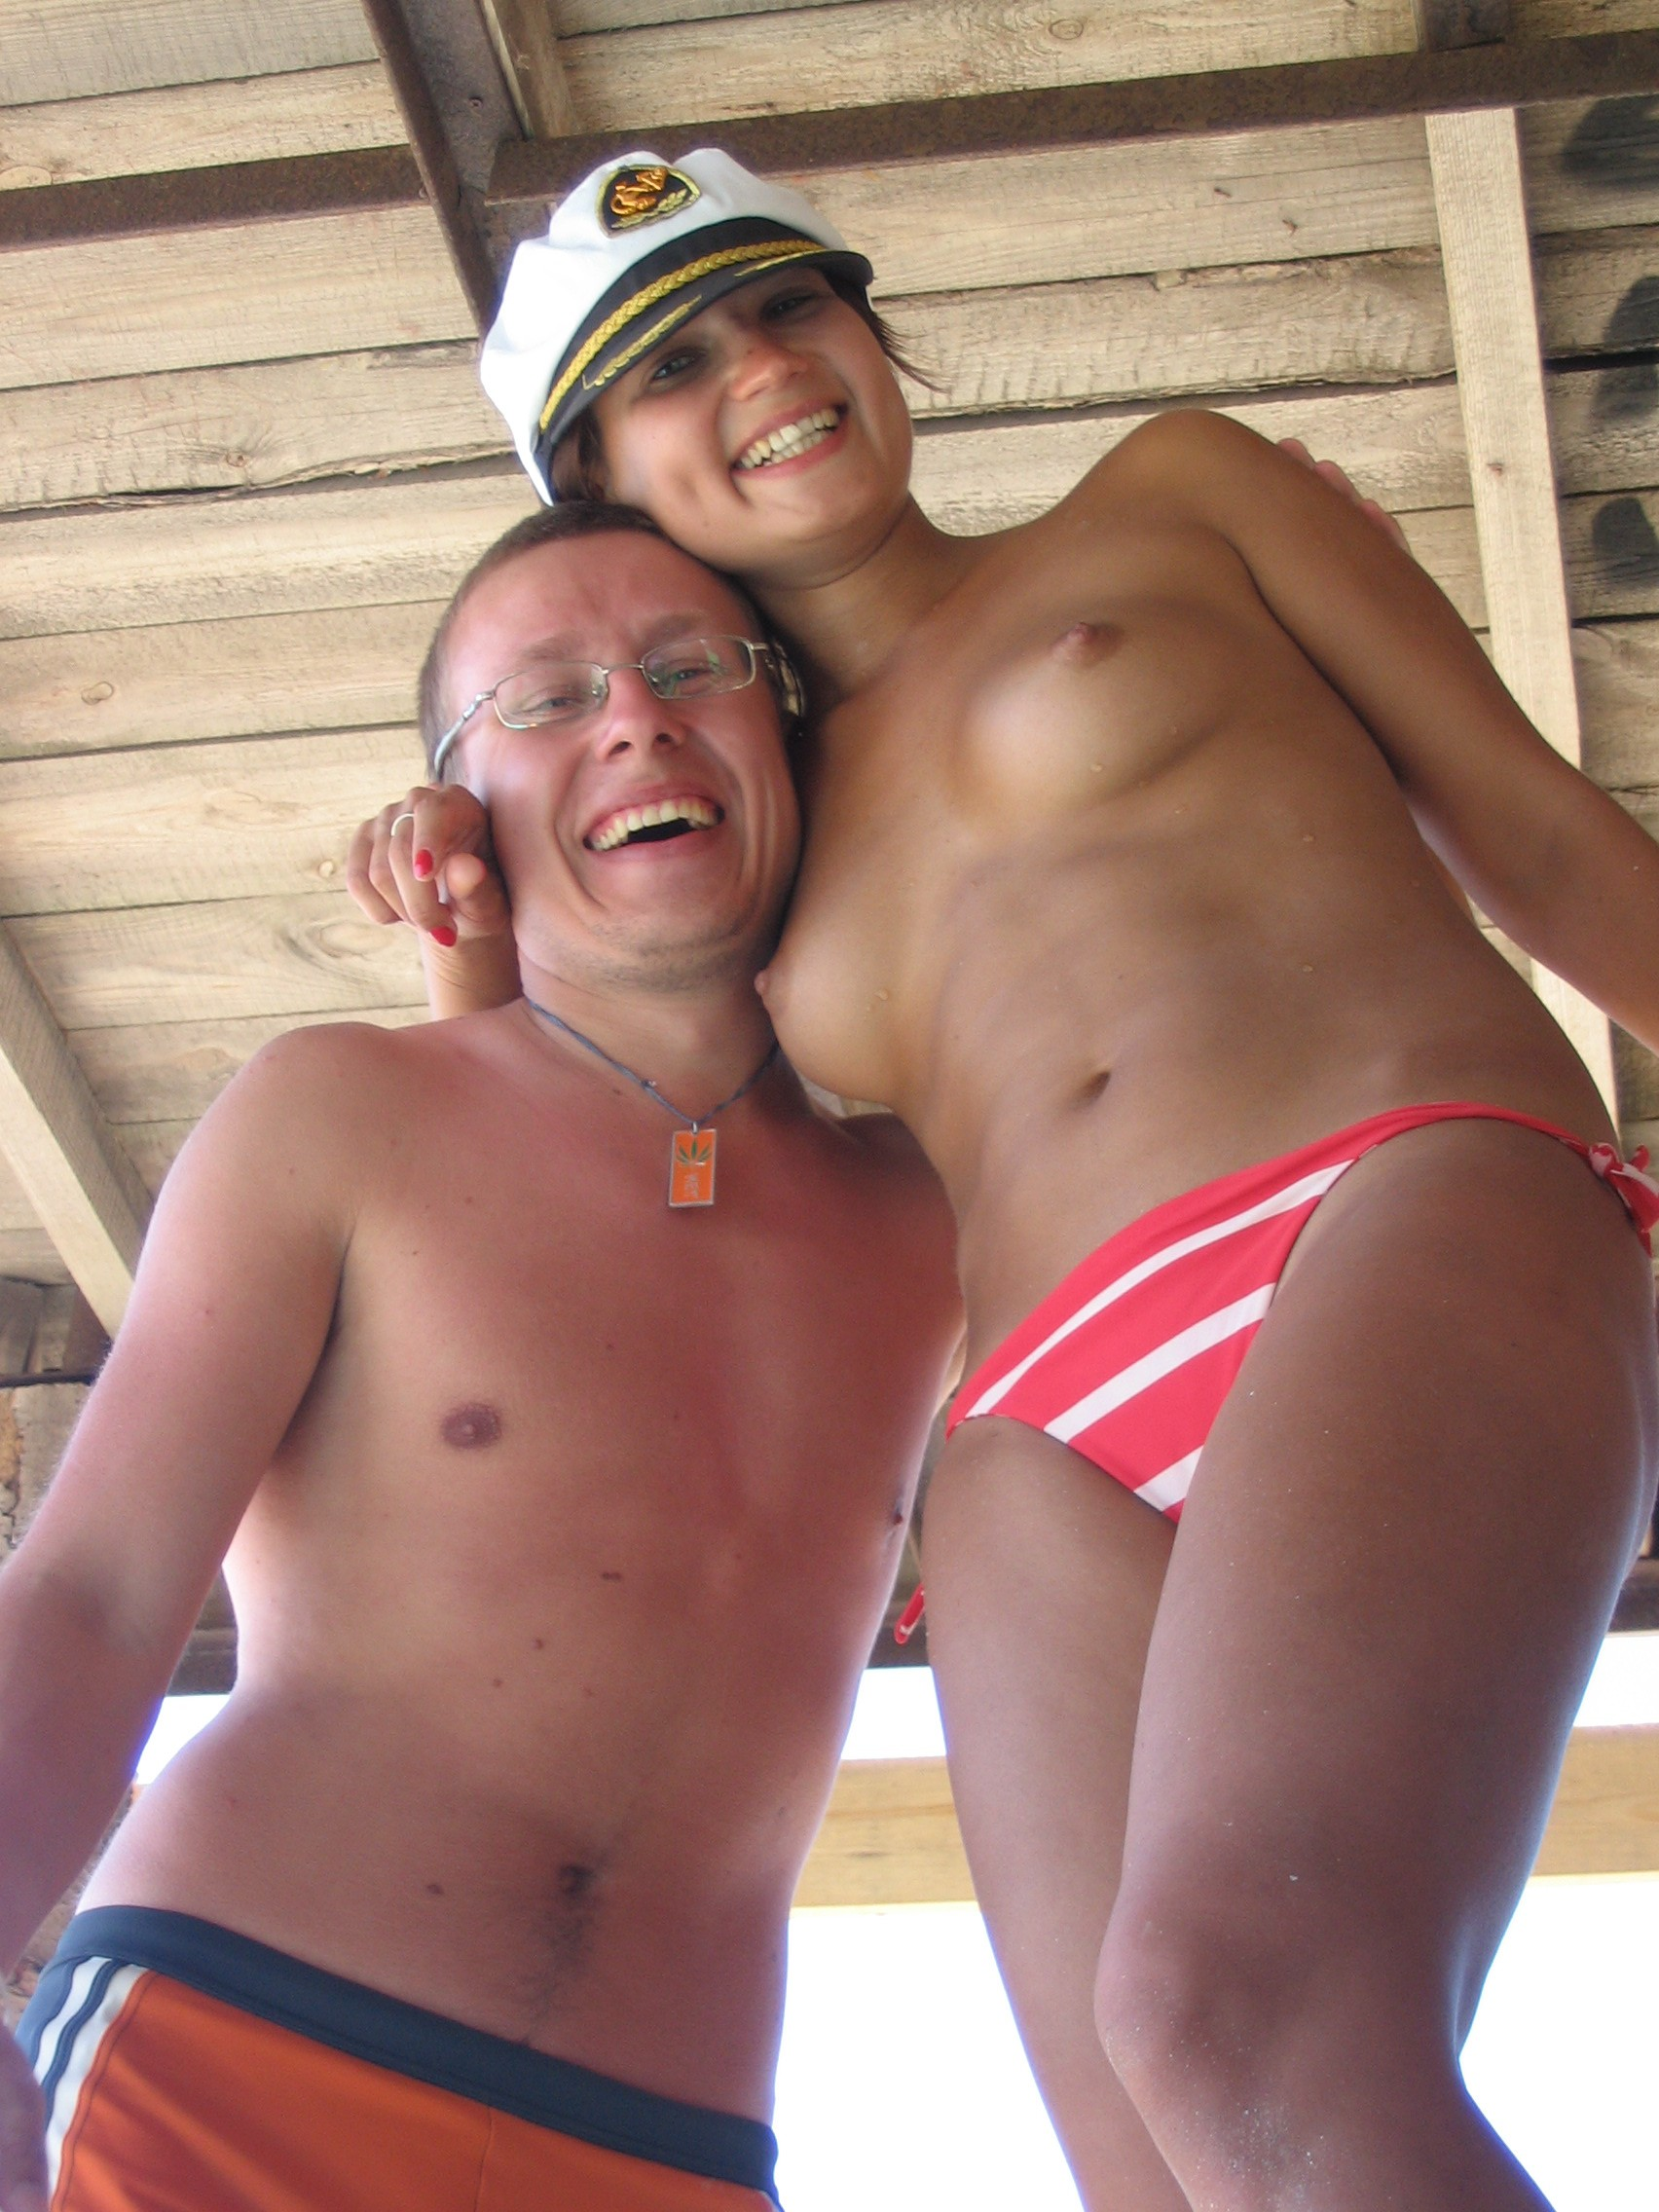 Woman plays captain with happy man